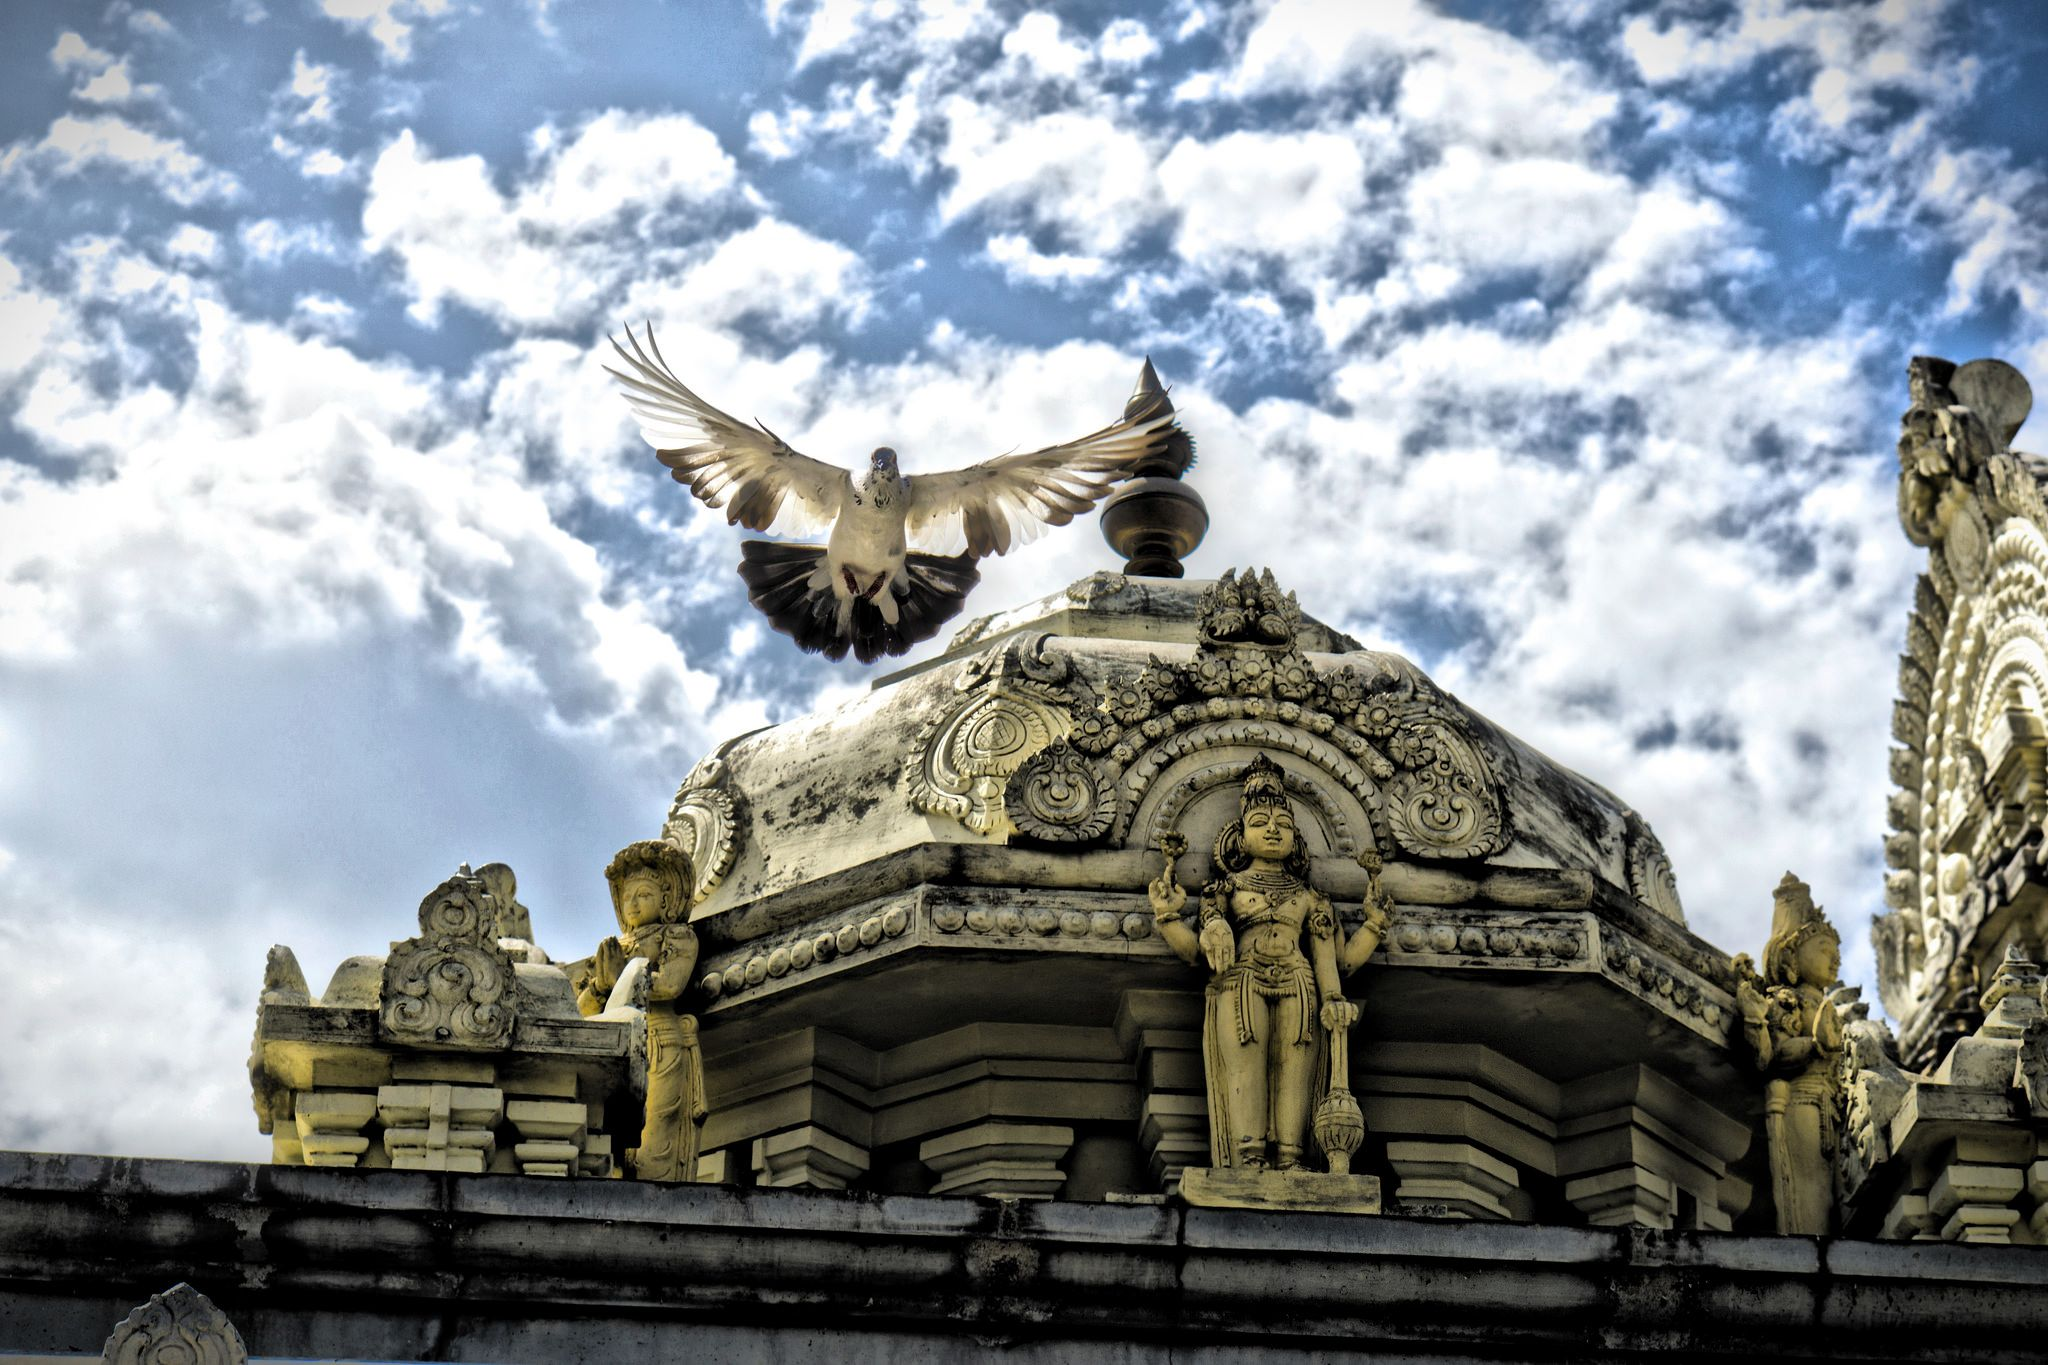 https://flic.kr/p/vLCQKT | Free from tranquil | Pigeon flying above temple